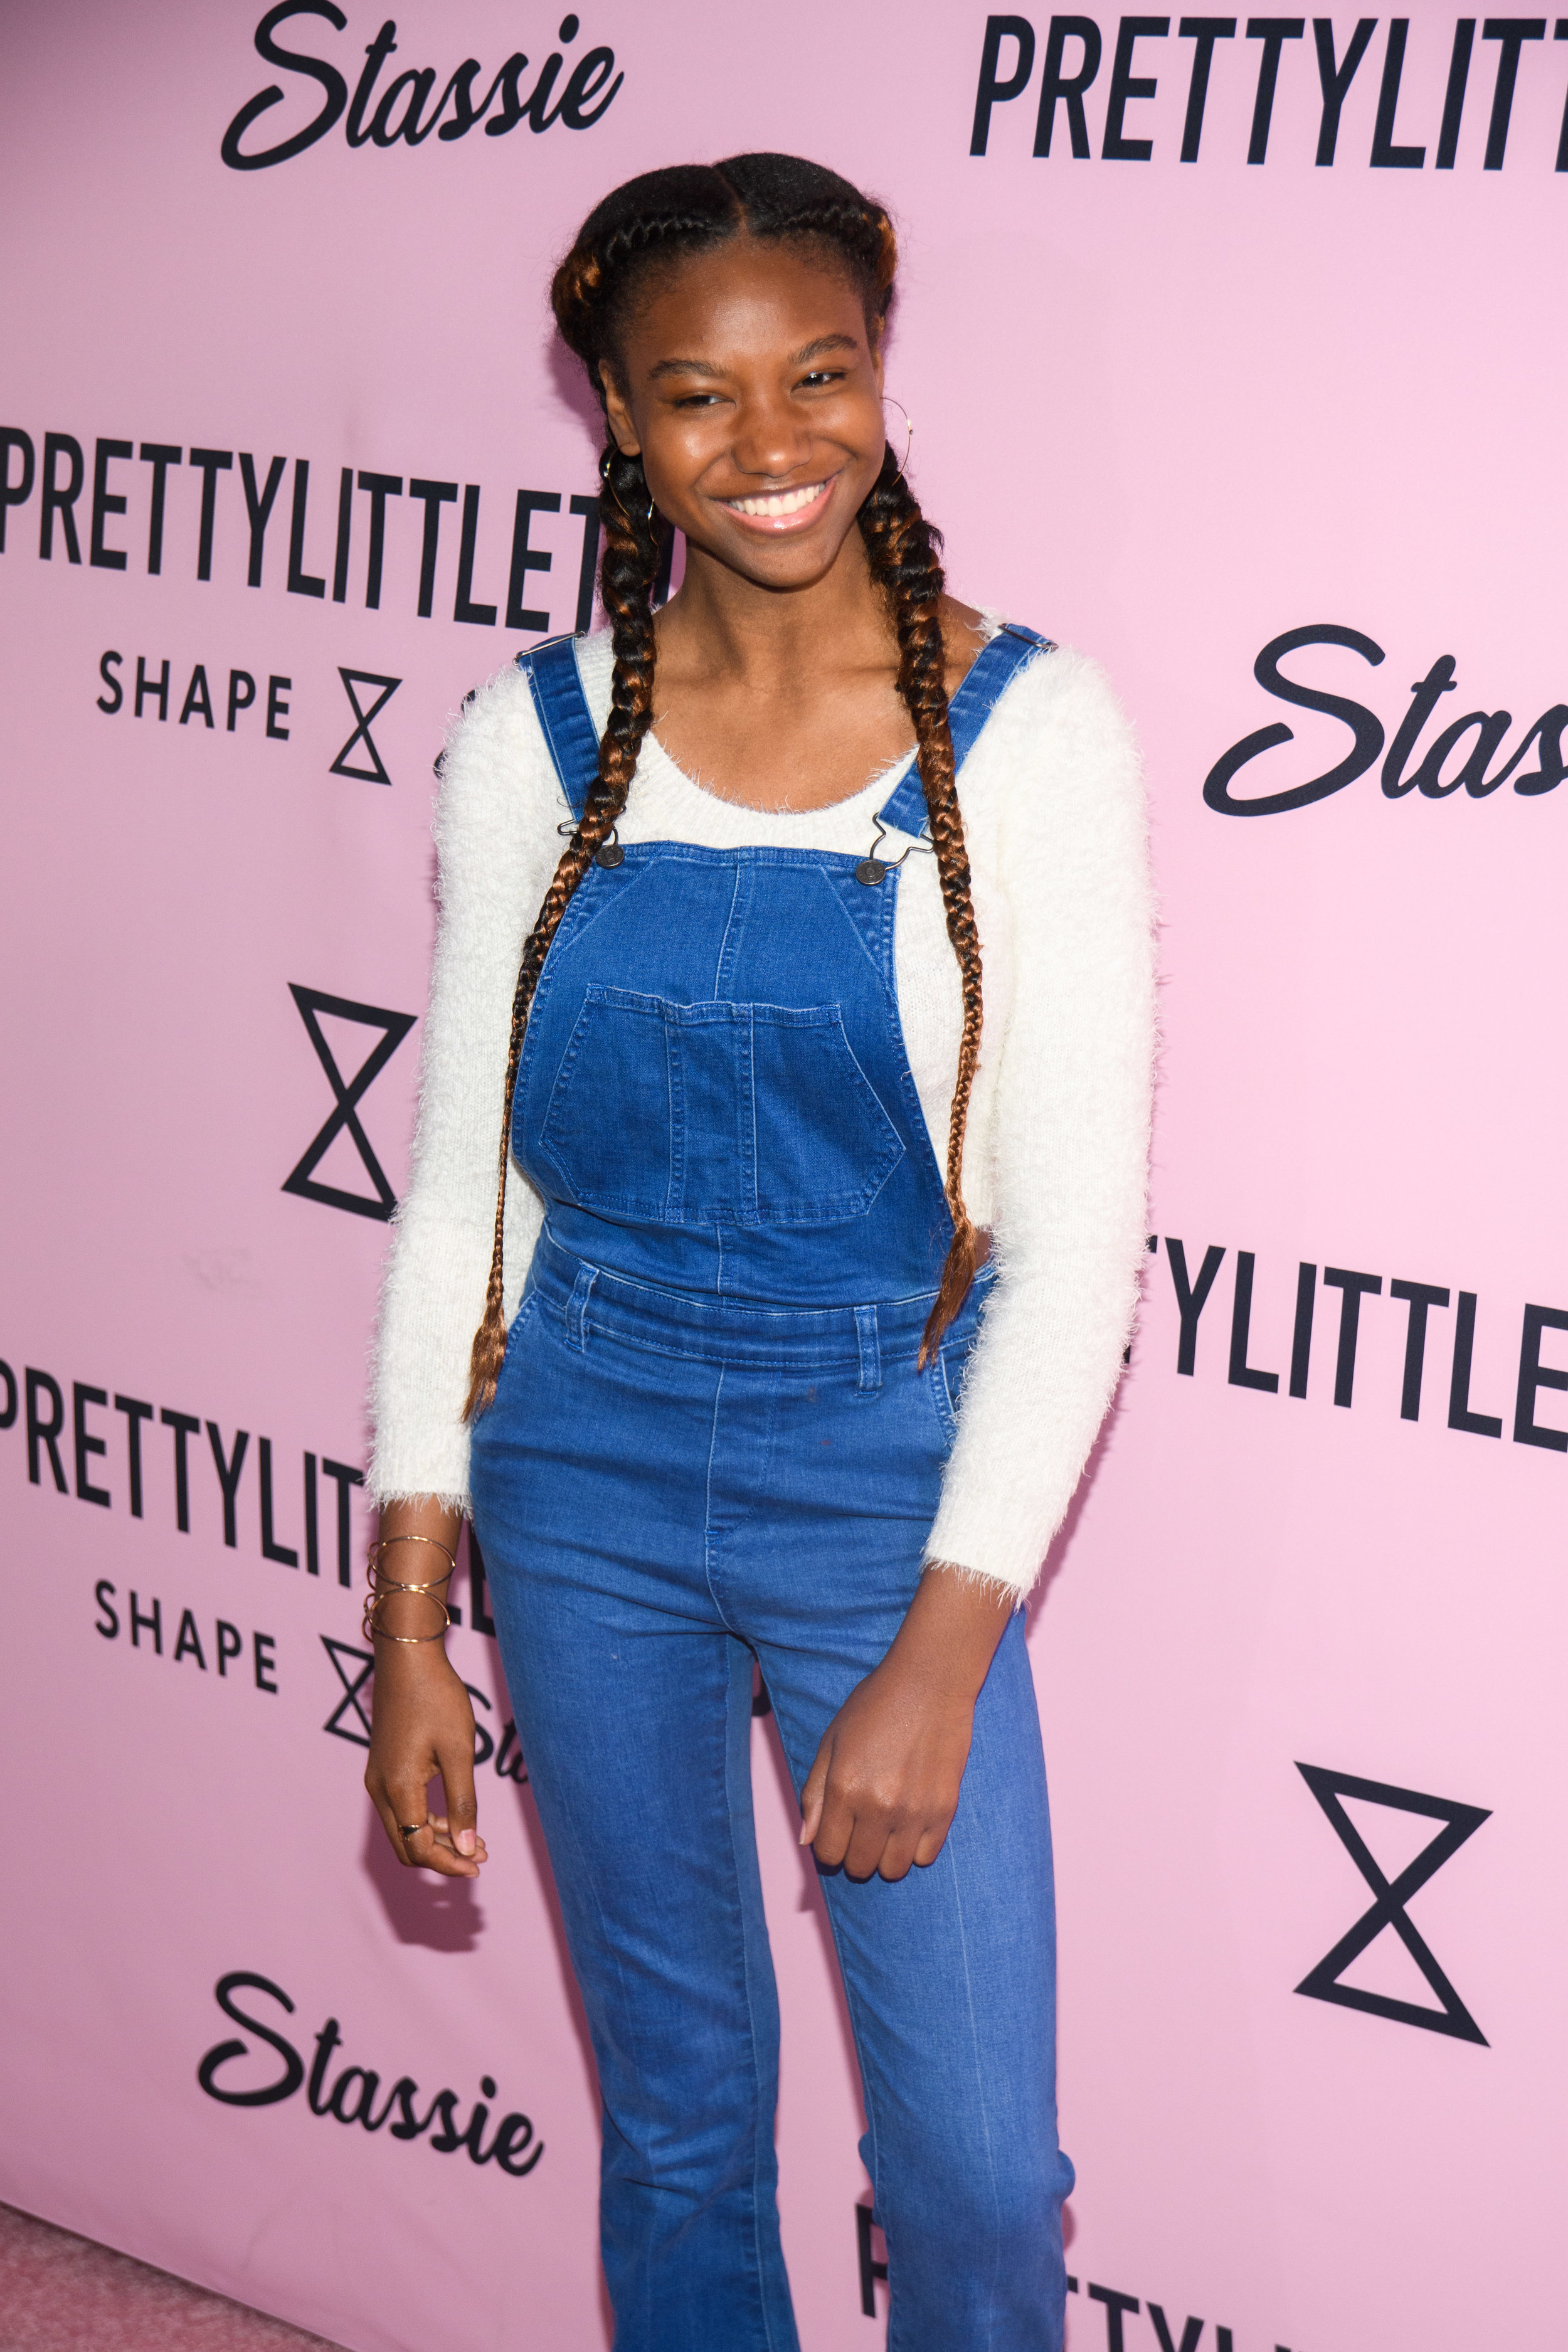 PrettyLittleThing New PLT Shape Collection with Stassie Celebrity Launch Party cute party guest in braids.jpg